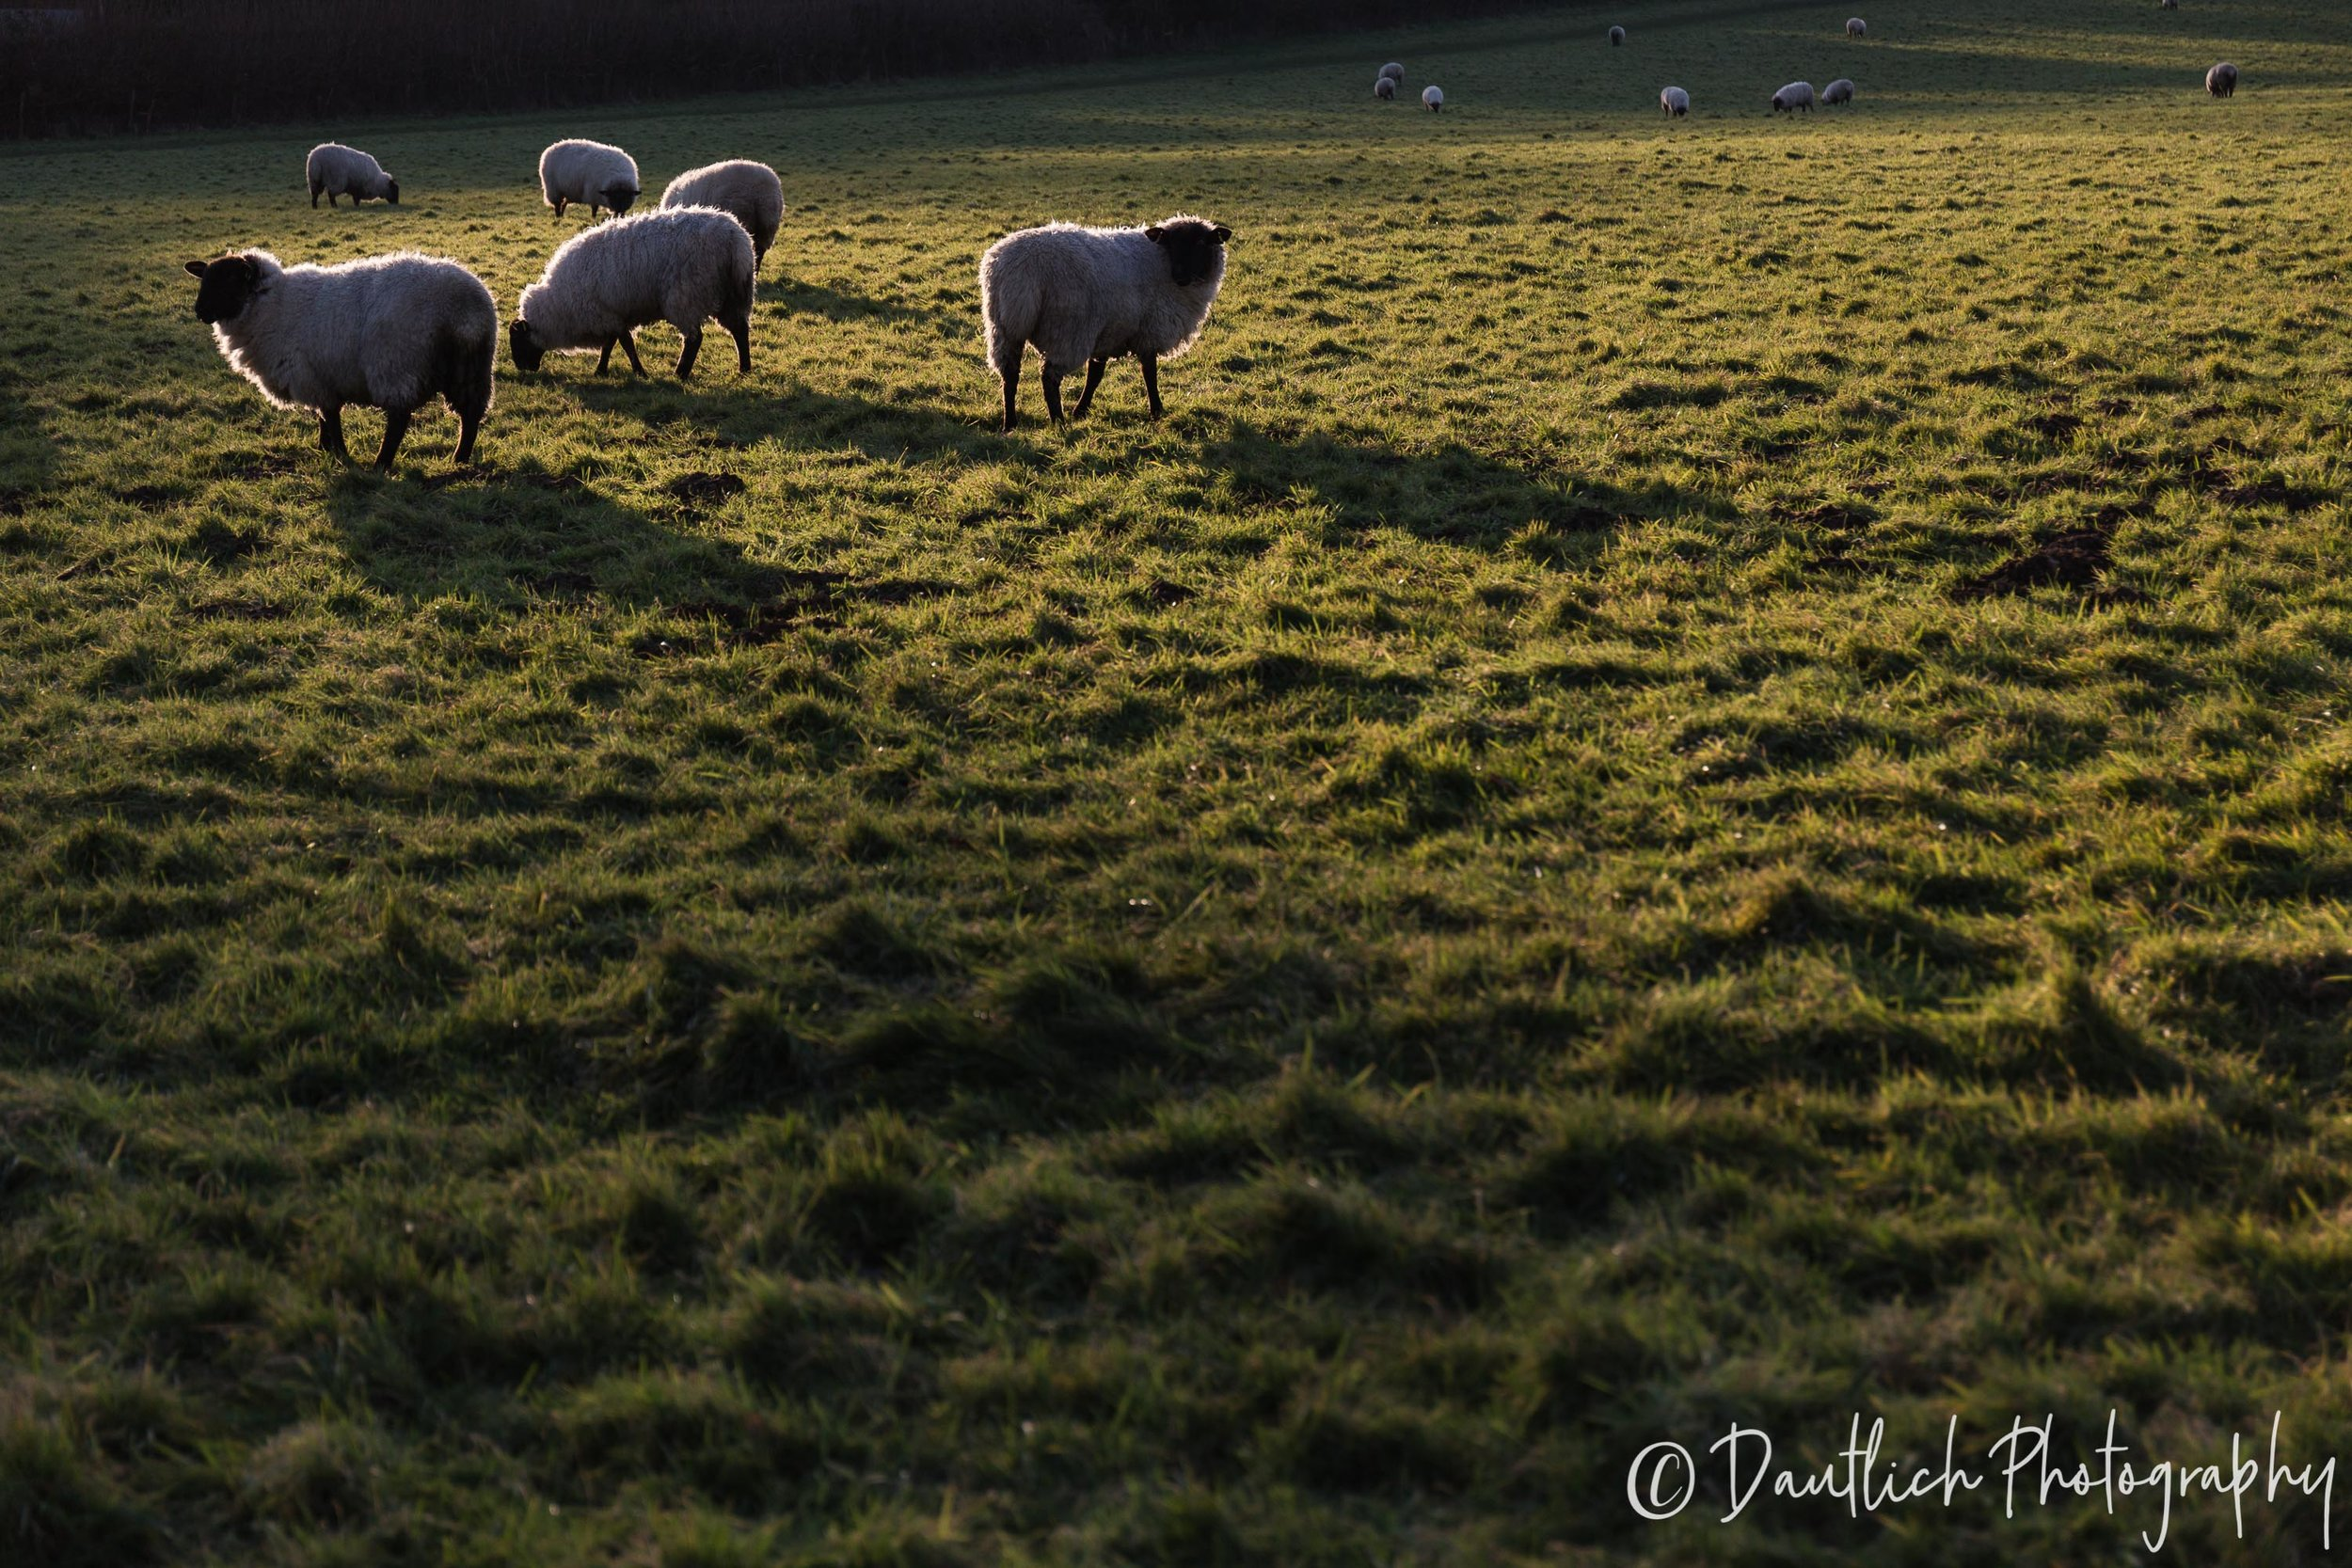 Sheep in the field during golden hour.